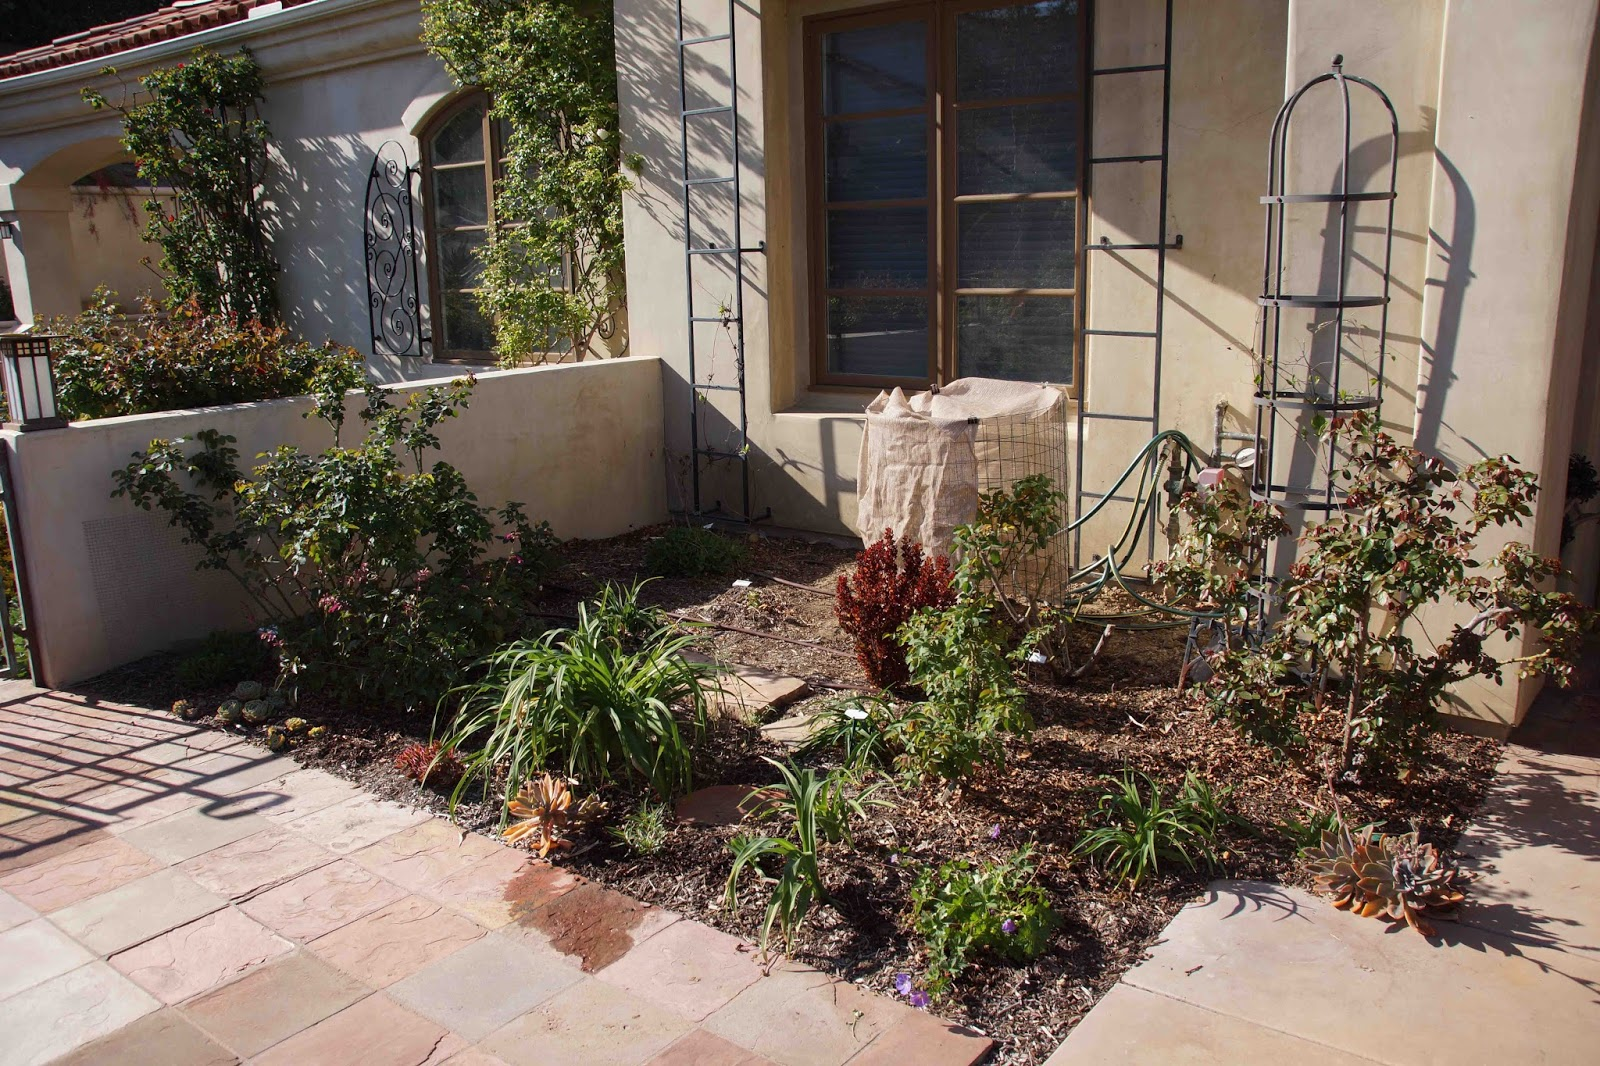 Four Different Days Of The Same Garden Bed: What\'s Missing?